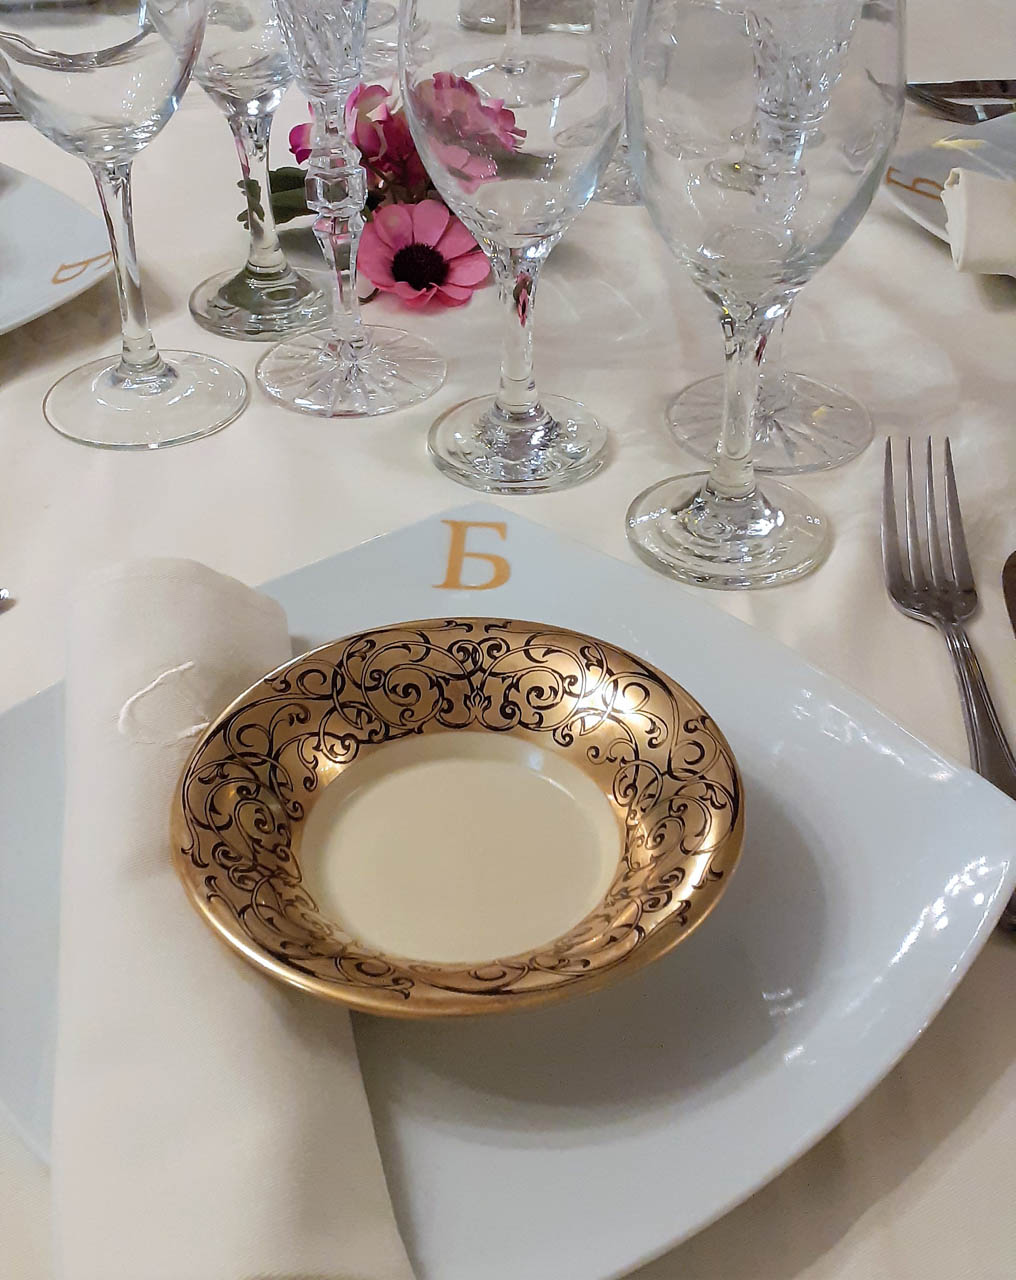 Wedding dish porcelain quality equipment receptions hall event athens glyfada barin events